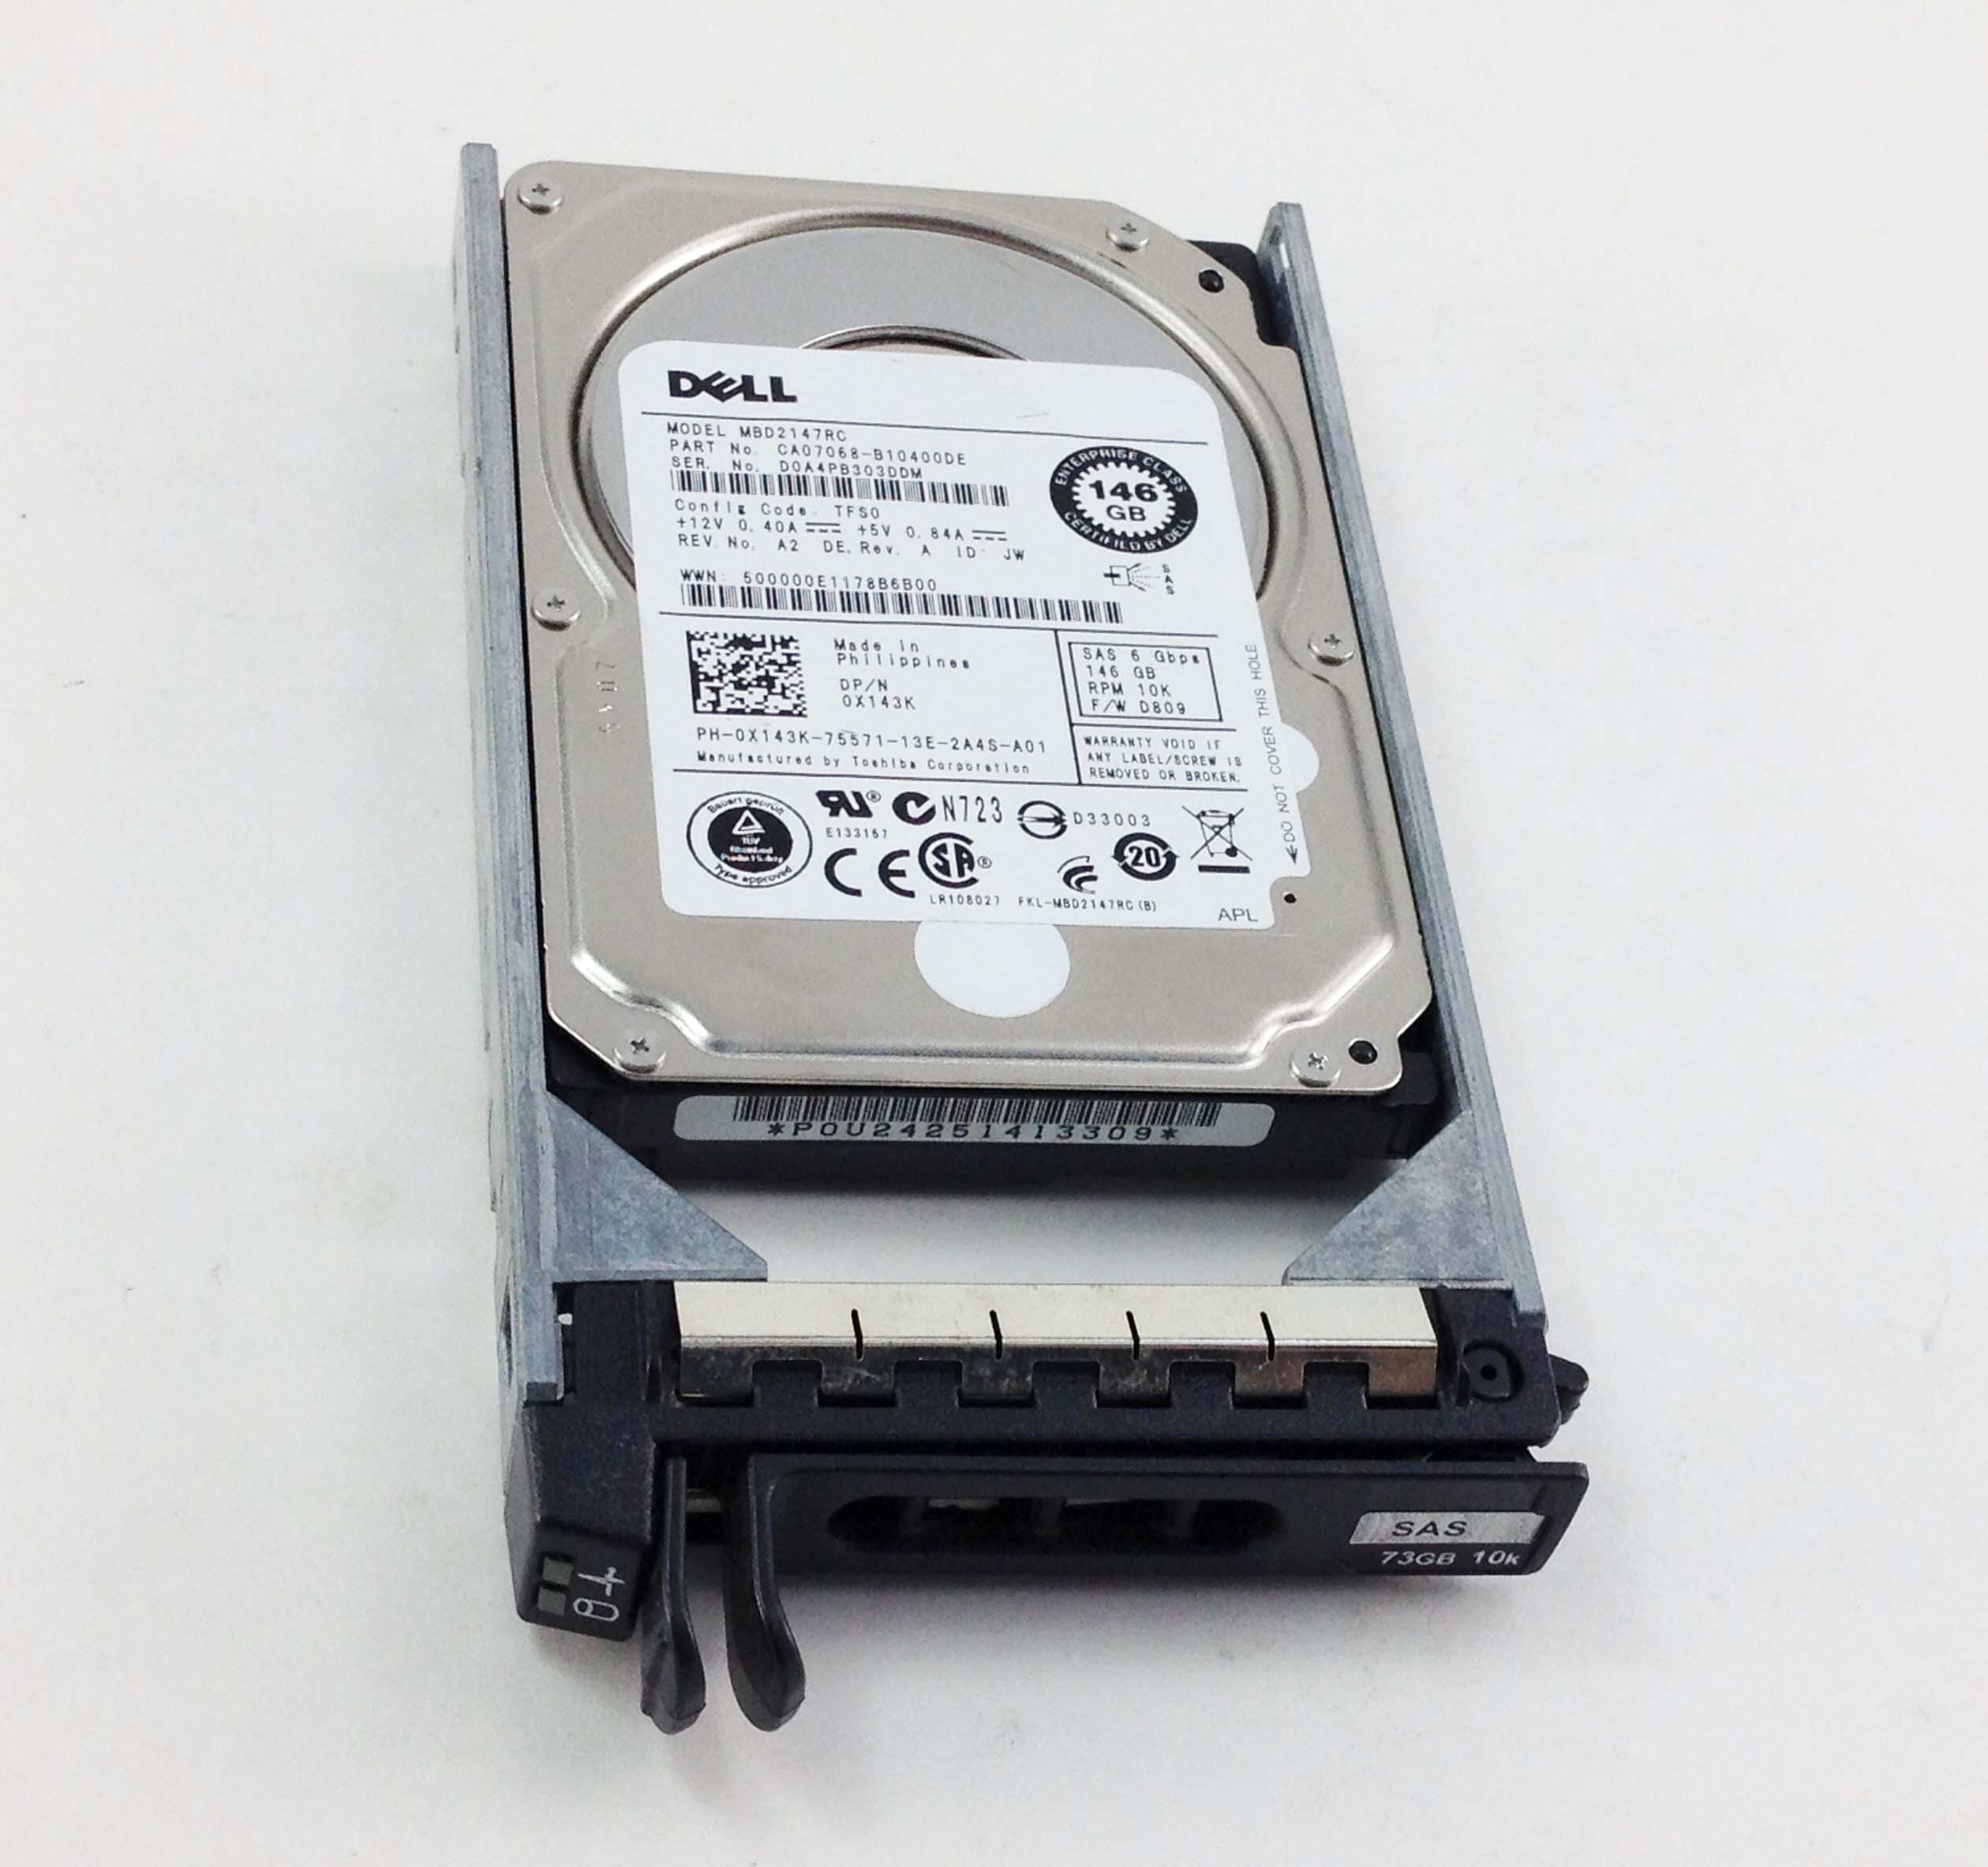 DELL 146GB 10K 6GBPS SAS 2.5'' HARD DRIVE (X143K)